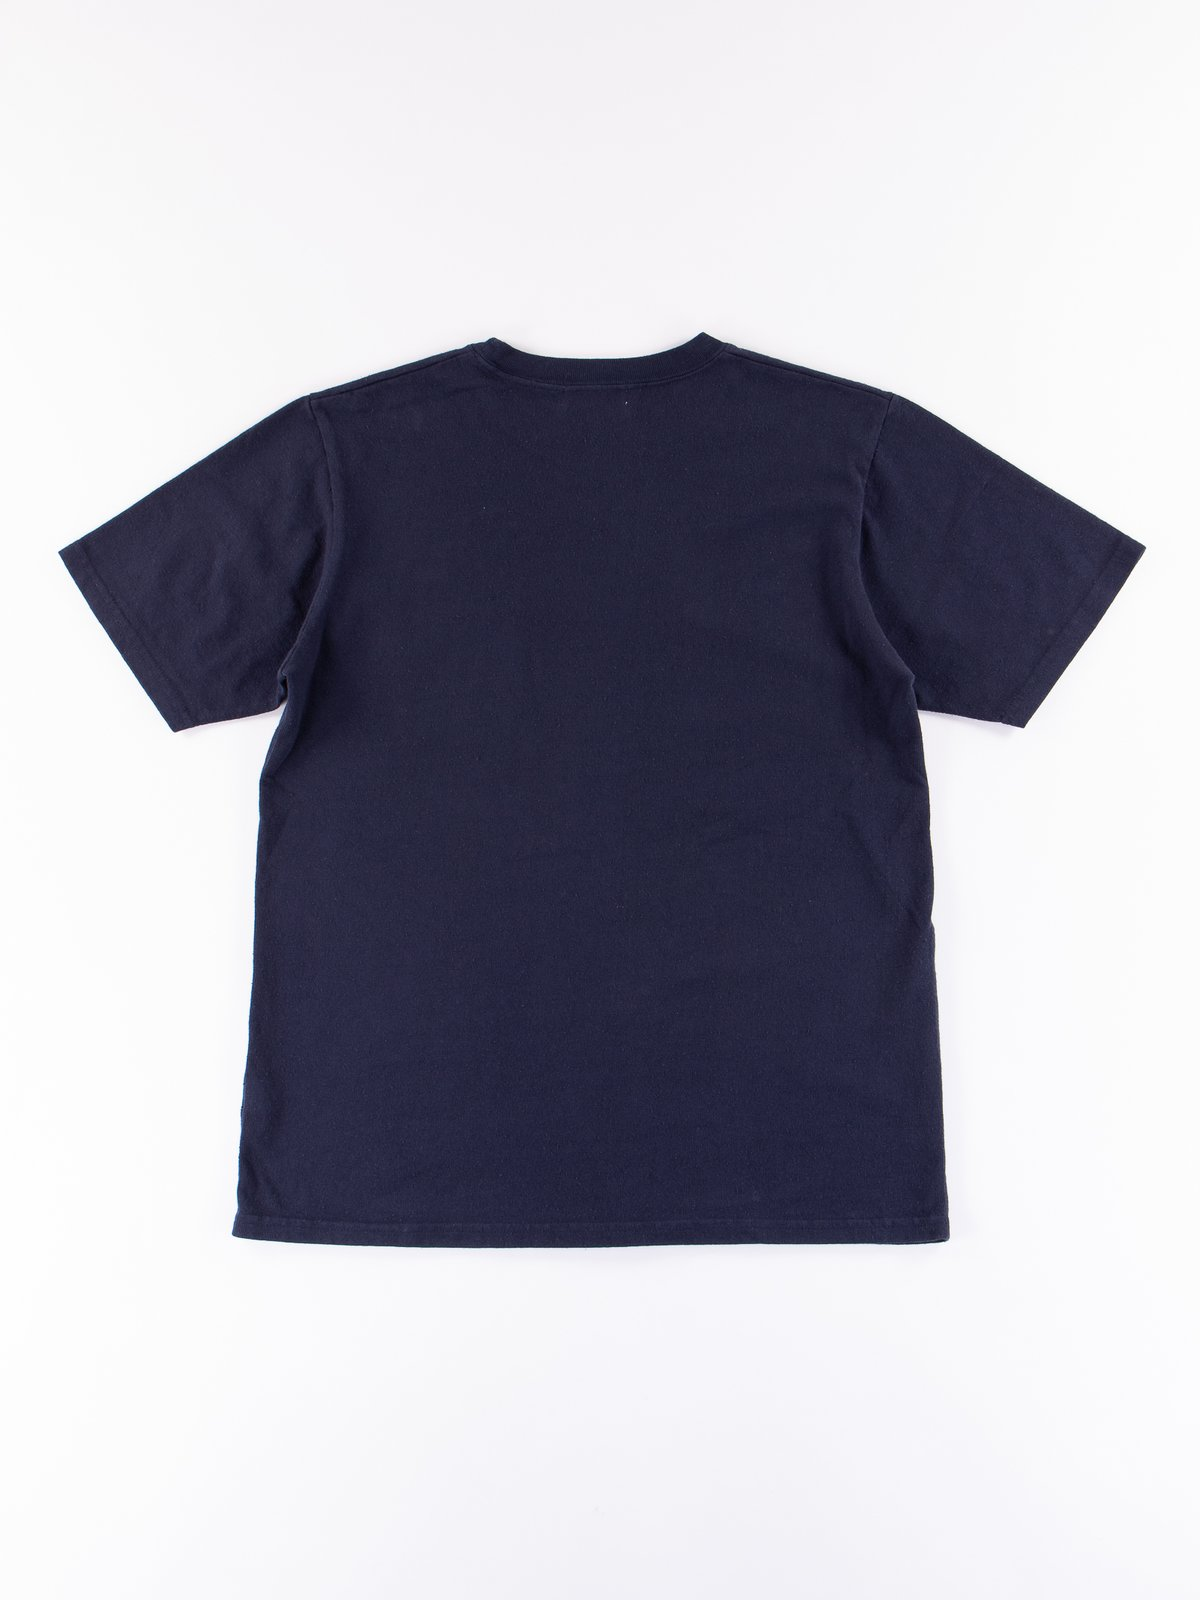 Navy Heavy Oz Pocket Tee - Image 5